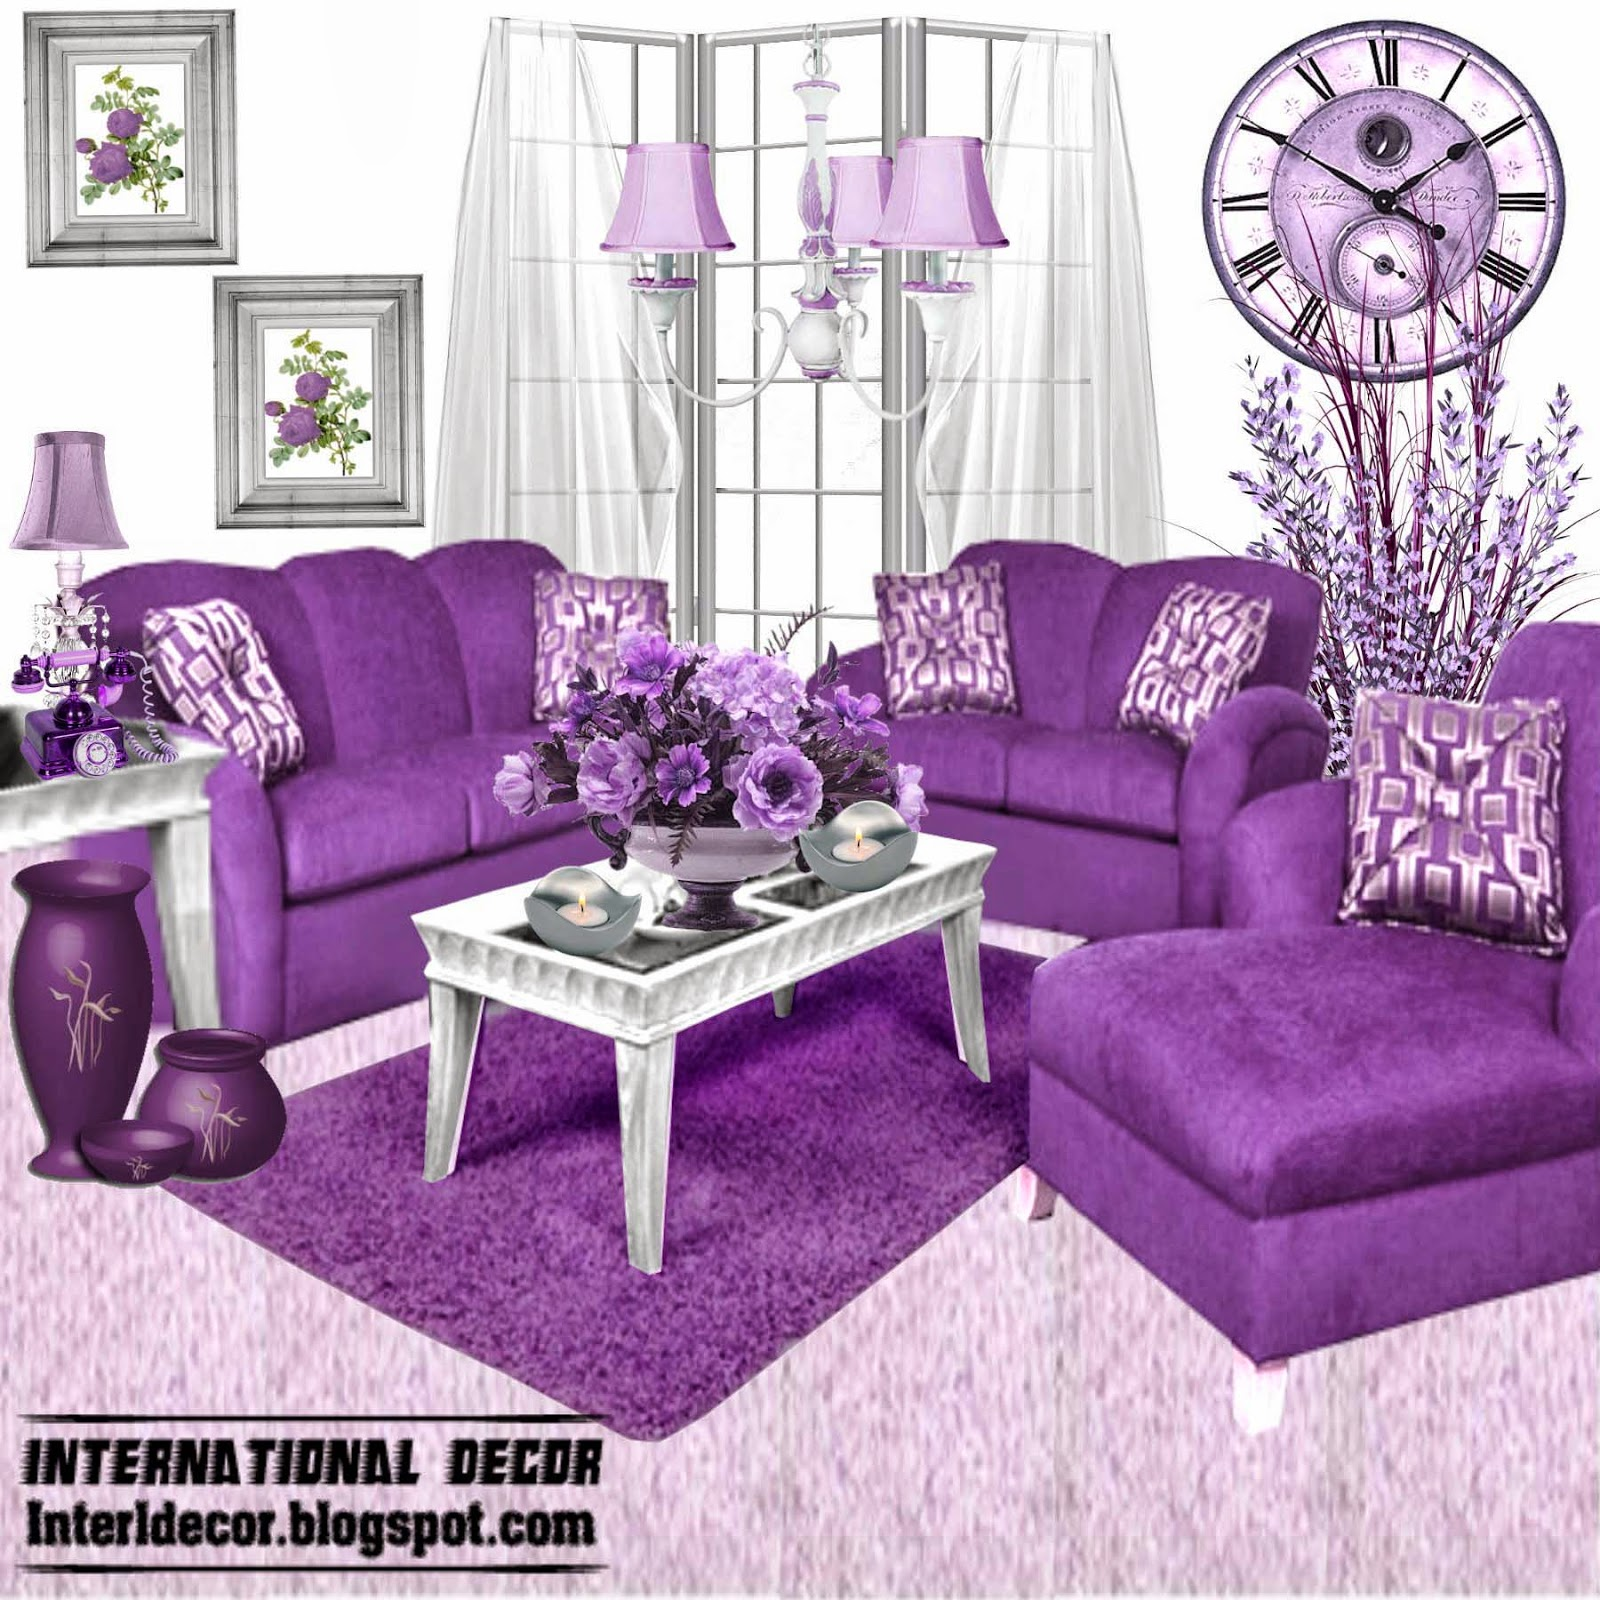 Luxury purple furniture sets sofas chairs for living for Sofa set designs for living room